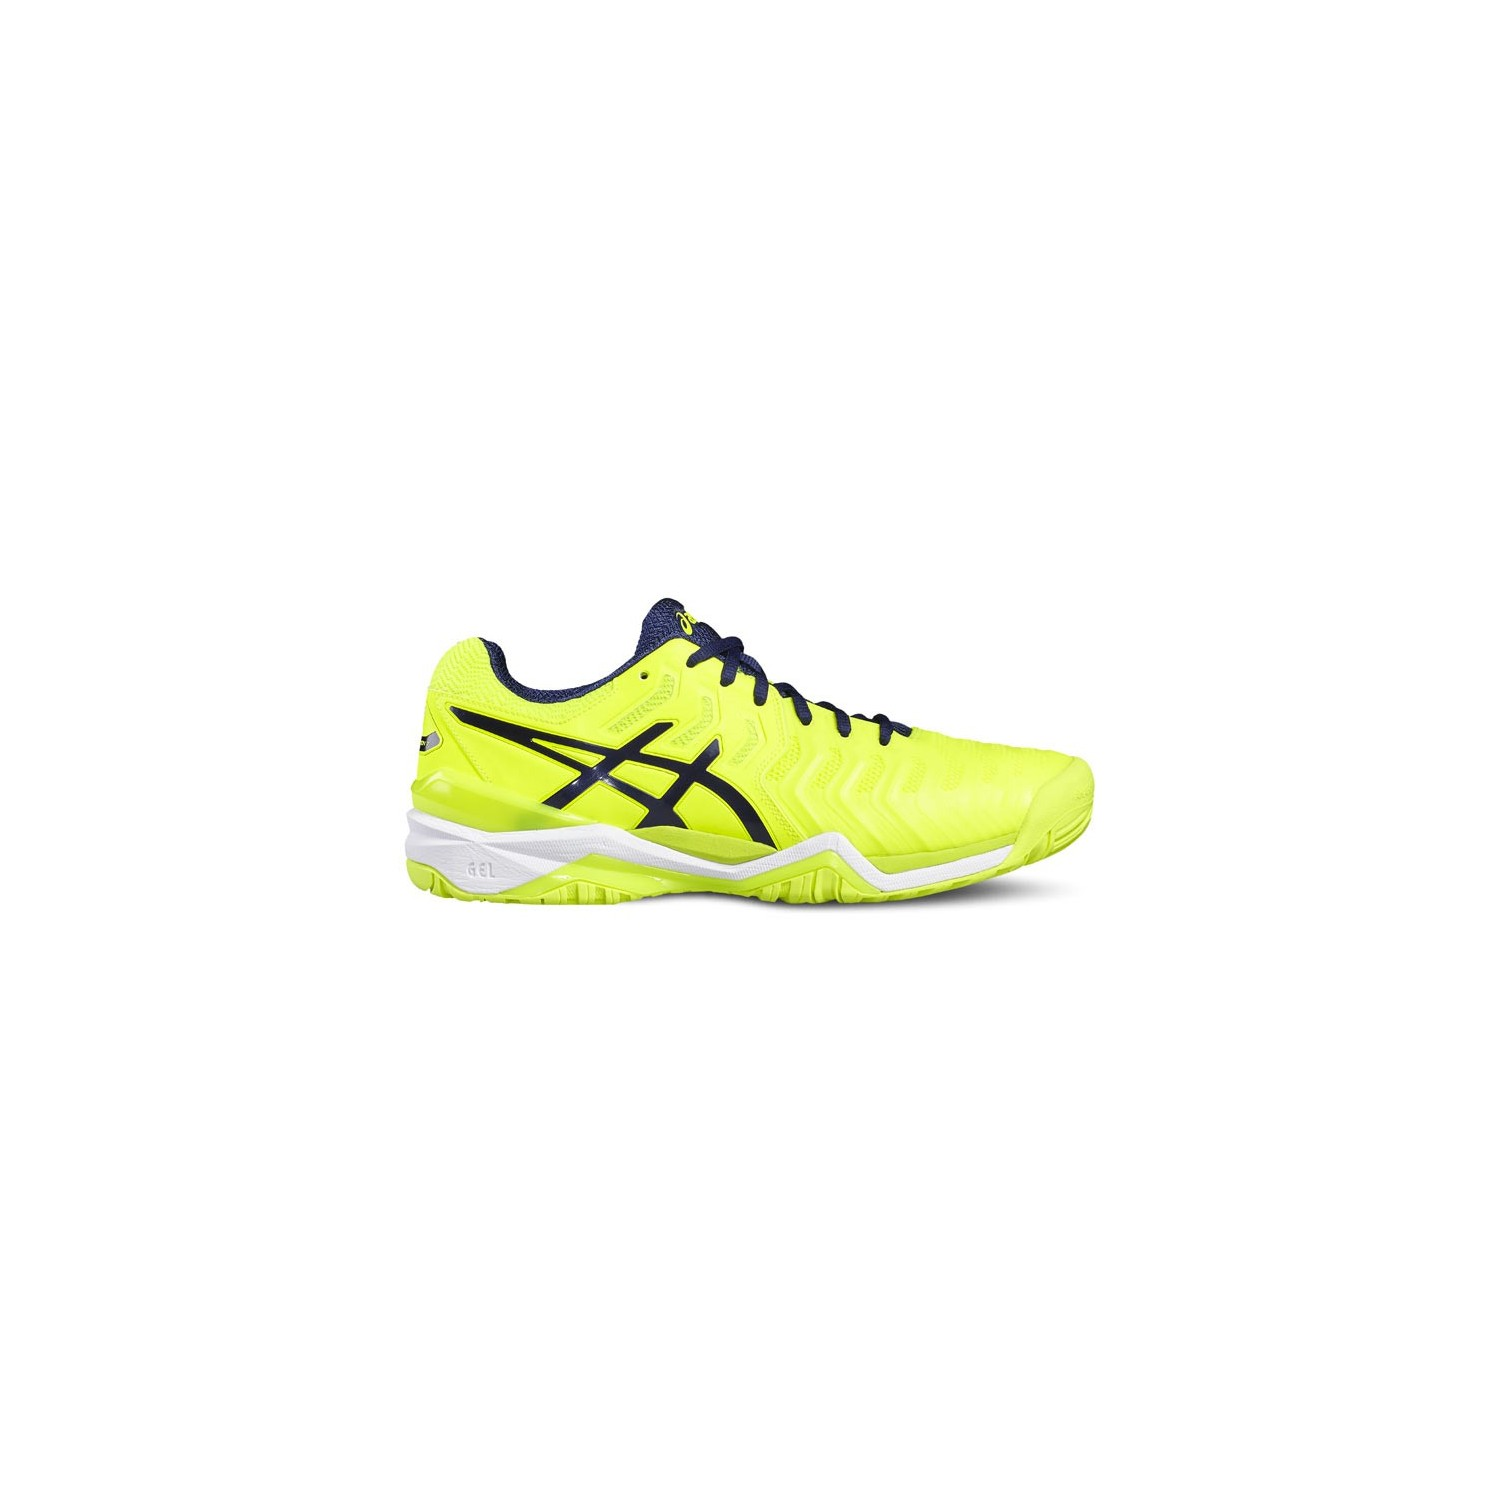 Asics Tennis Chaussures Chaussures Homme Tennis Asics Homme EPX4q4